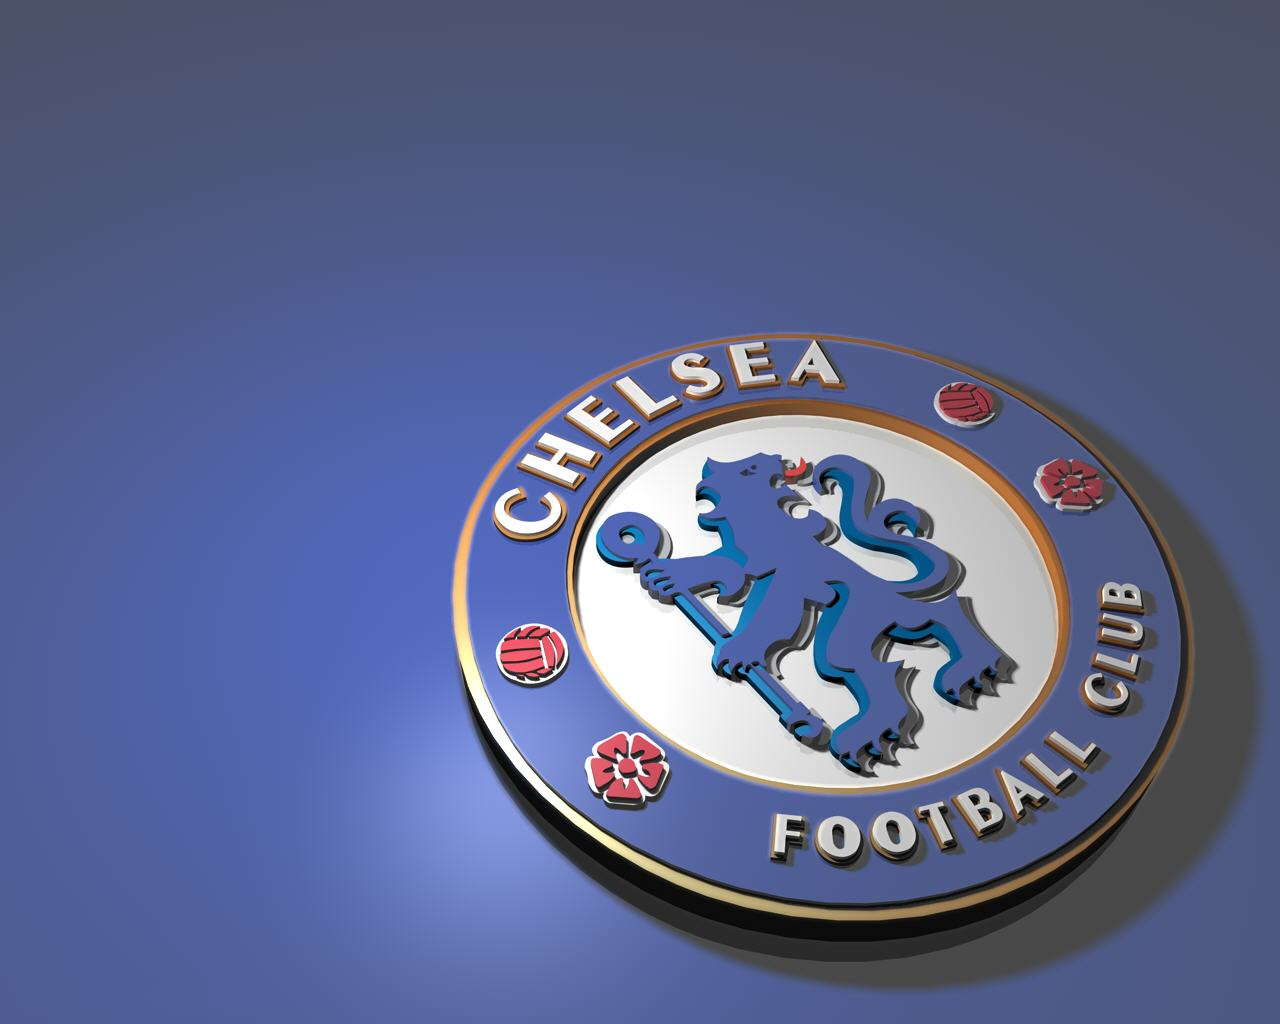 Chelsea Fc Logo Wallpapers HD wallpapers   Chelsea Fc Logo Wallpapers 1280x1024